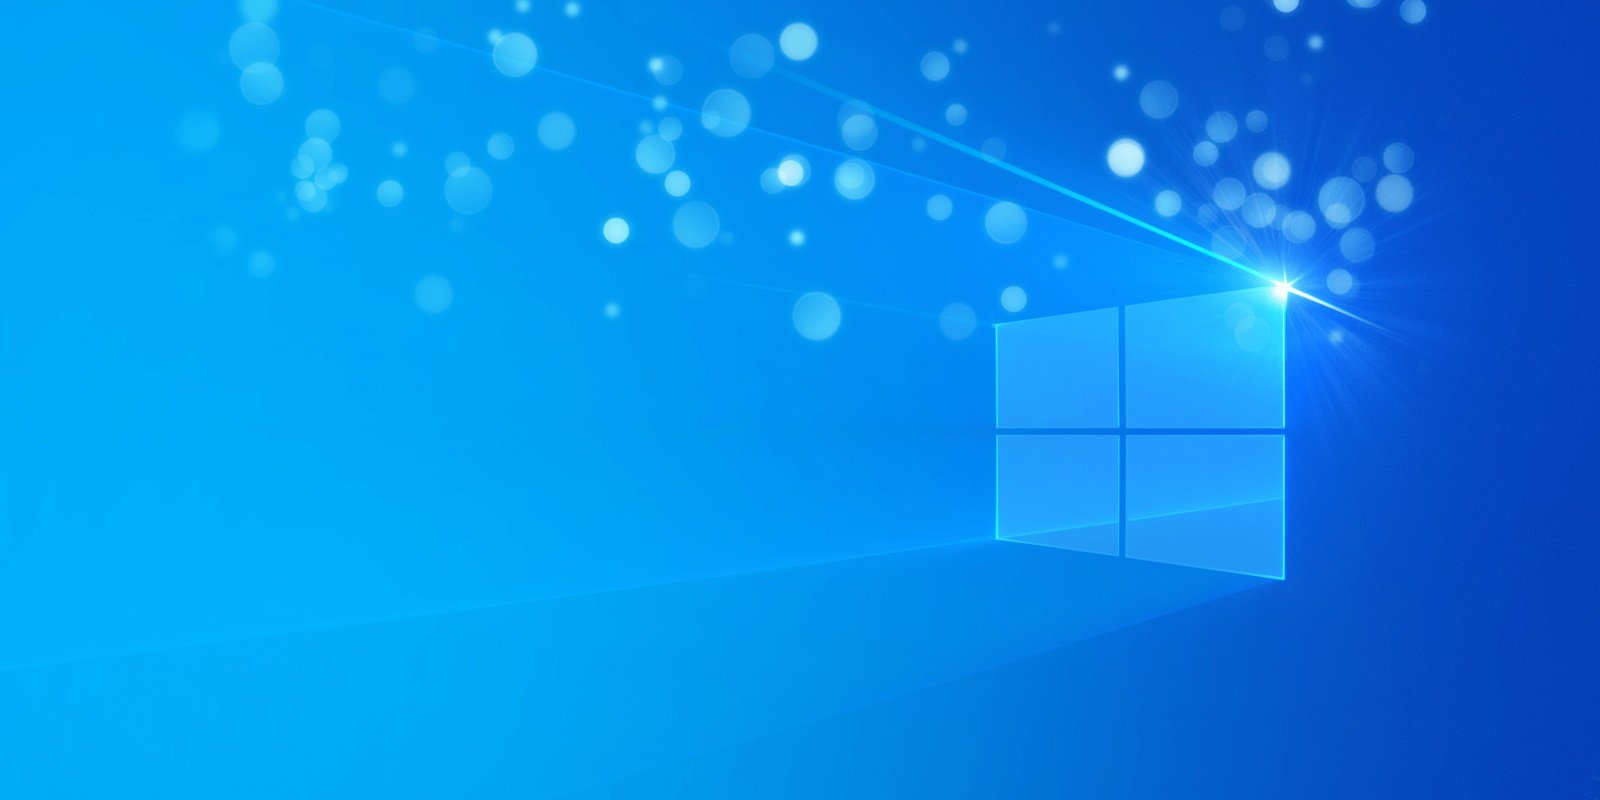 The New Windows 10 update leaks information about the upcoming 21H1 feature update